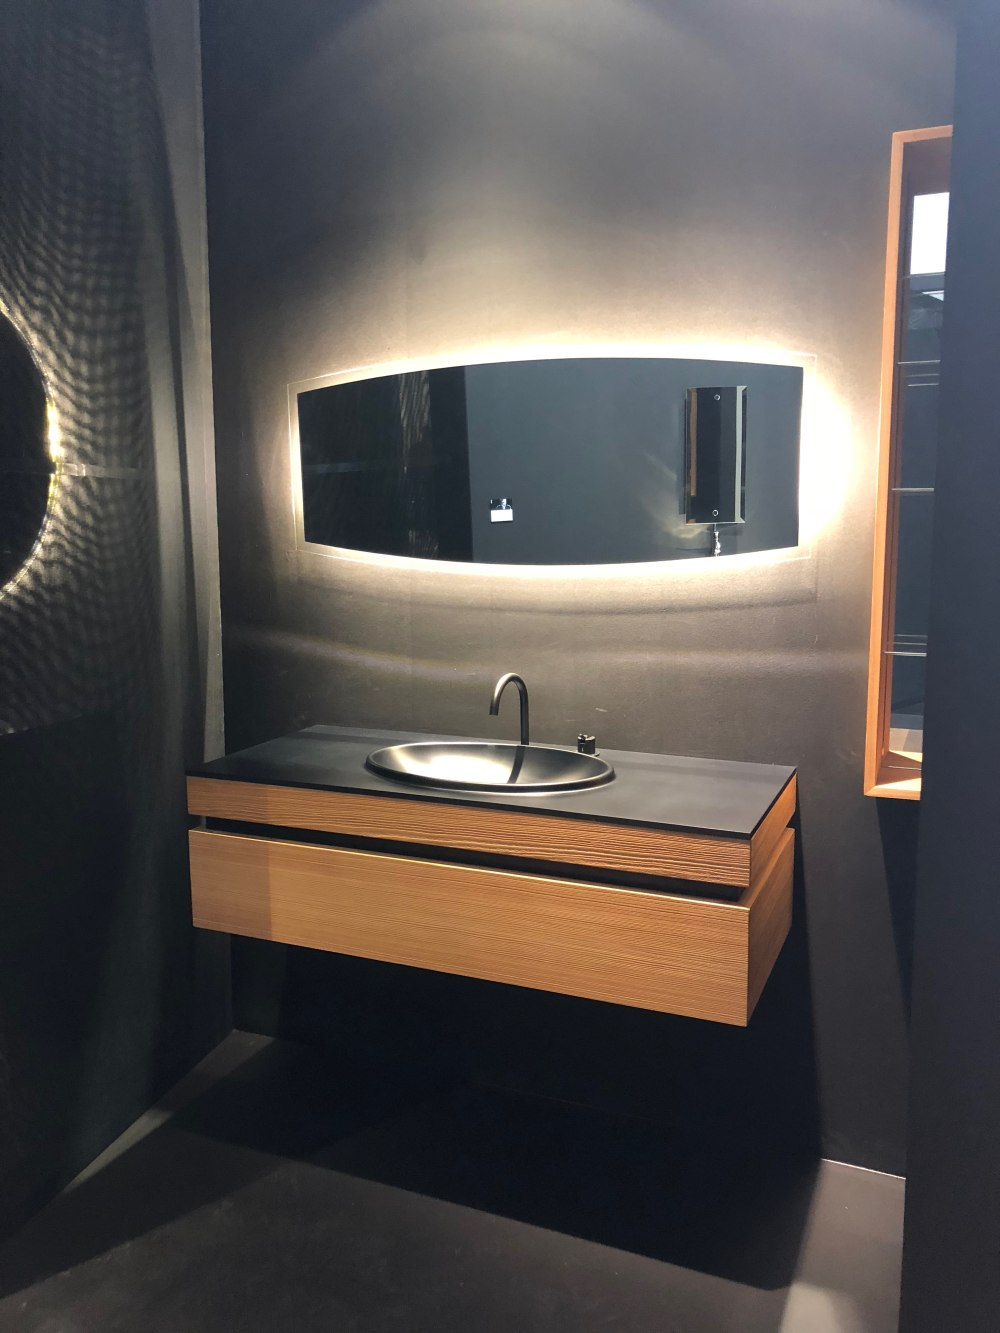 There's usually a strong connection between a bathroom vanity and the mirror, these often being complementary of one another